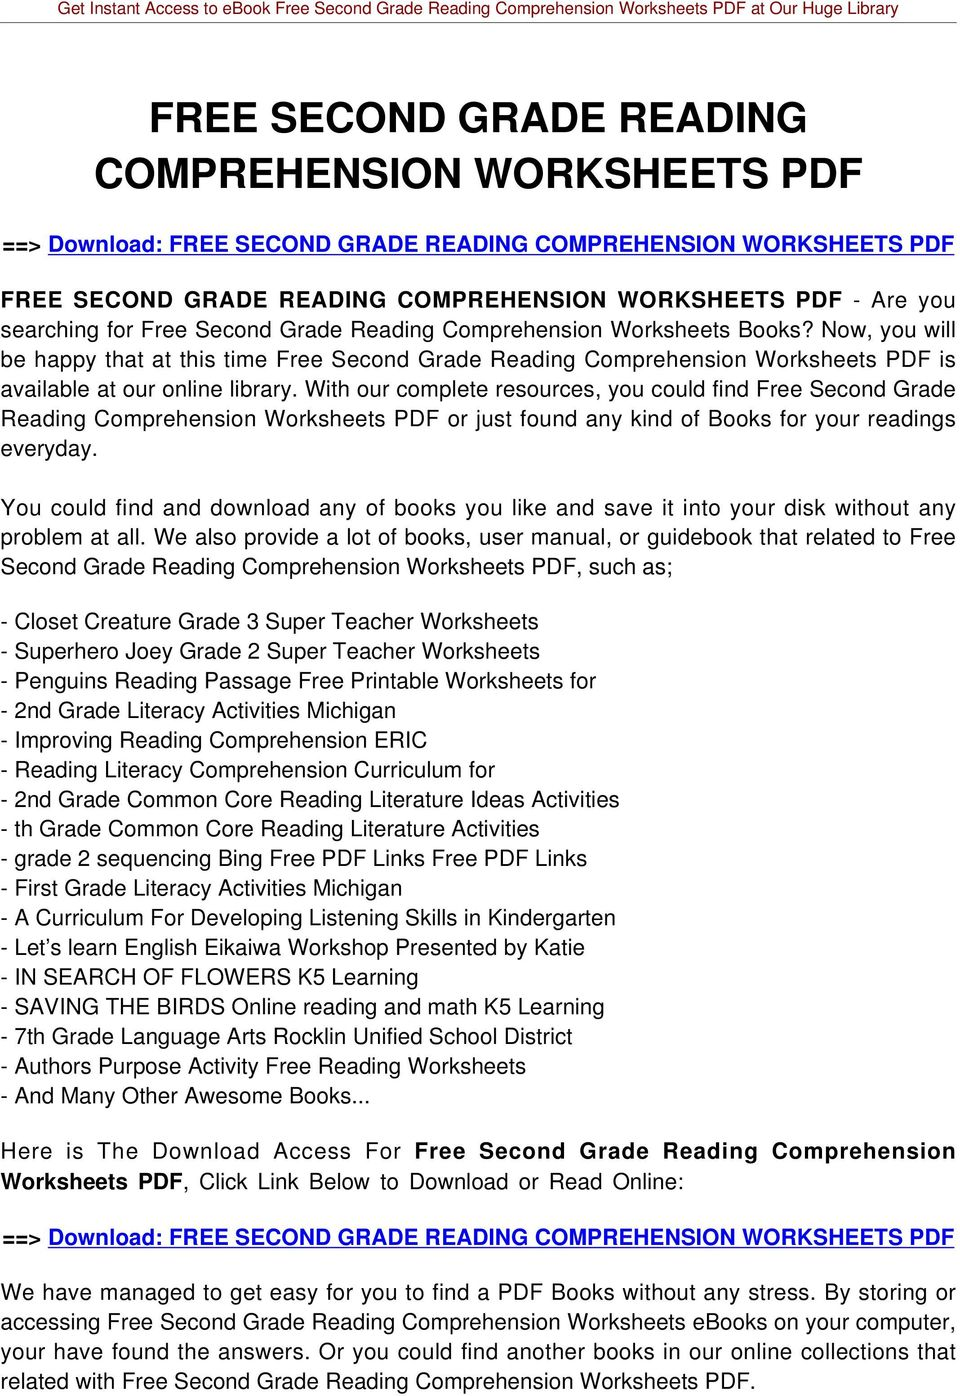 With our complete resources, you could find Free Second Grade Reading Comprehension Worksheets PDF or just found any kind of Books for your readings everyday.